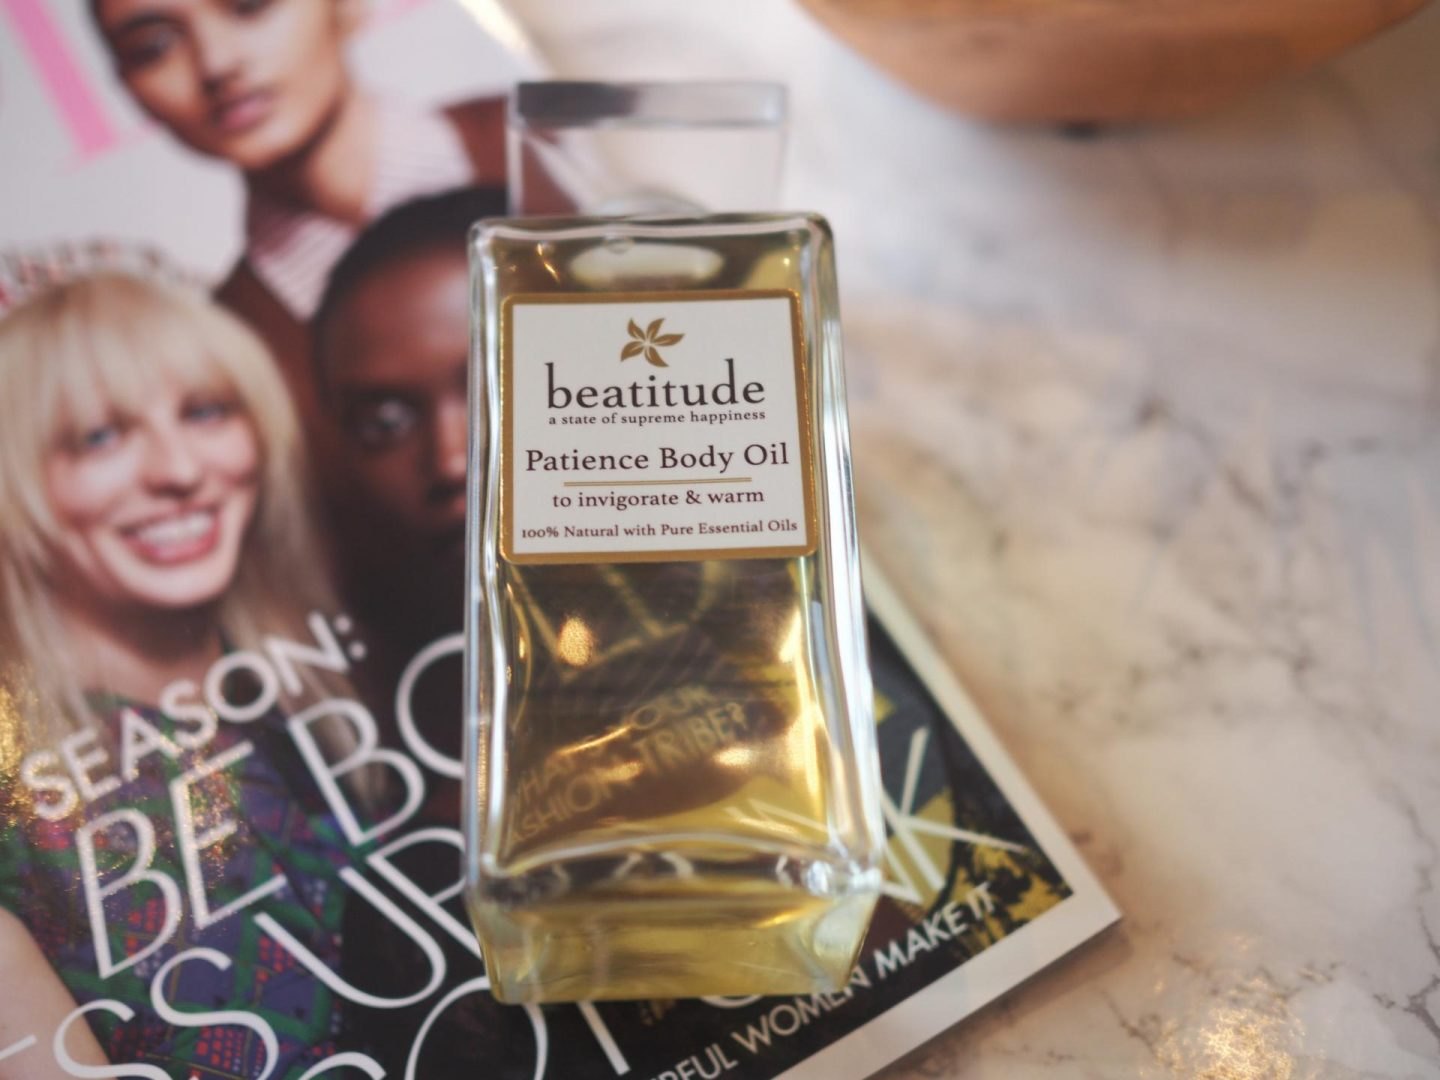 Beautitude Patience Body Oil